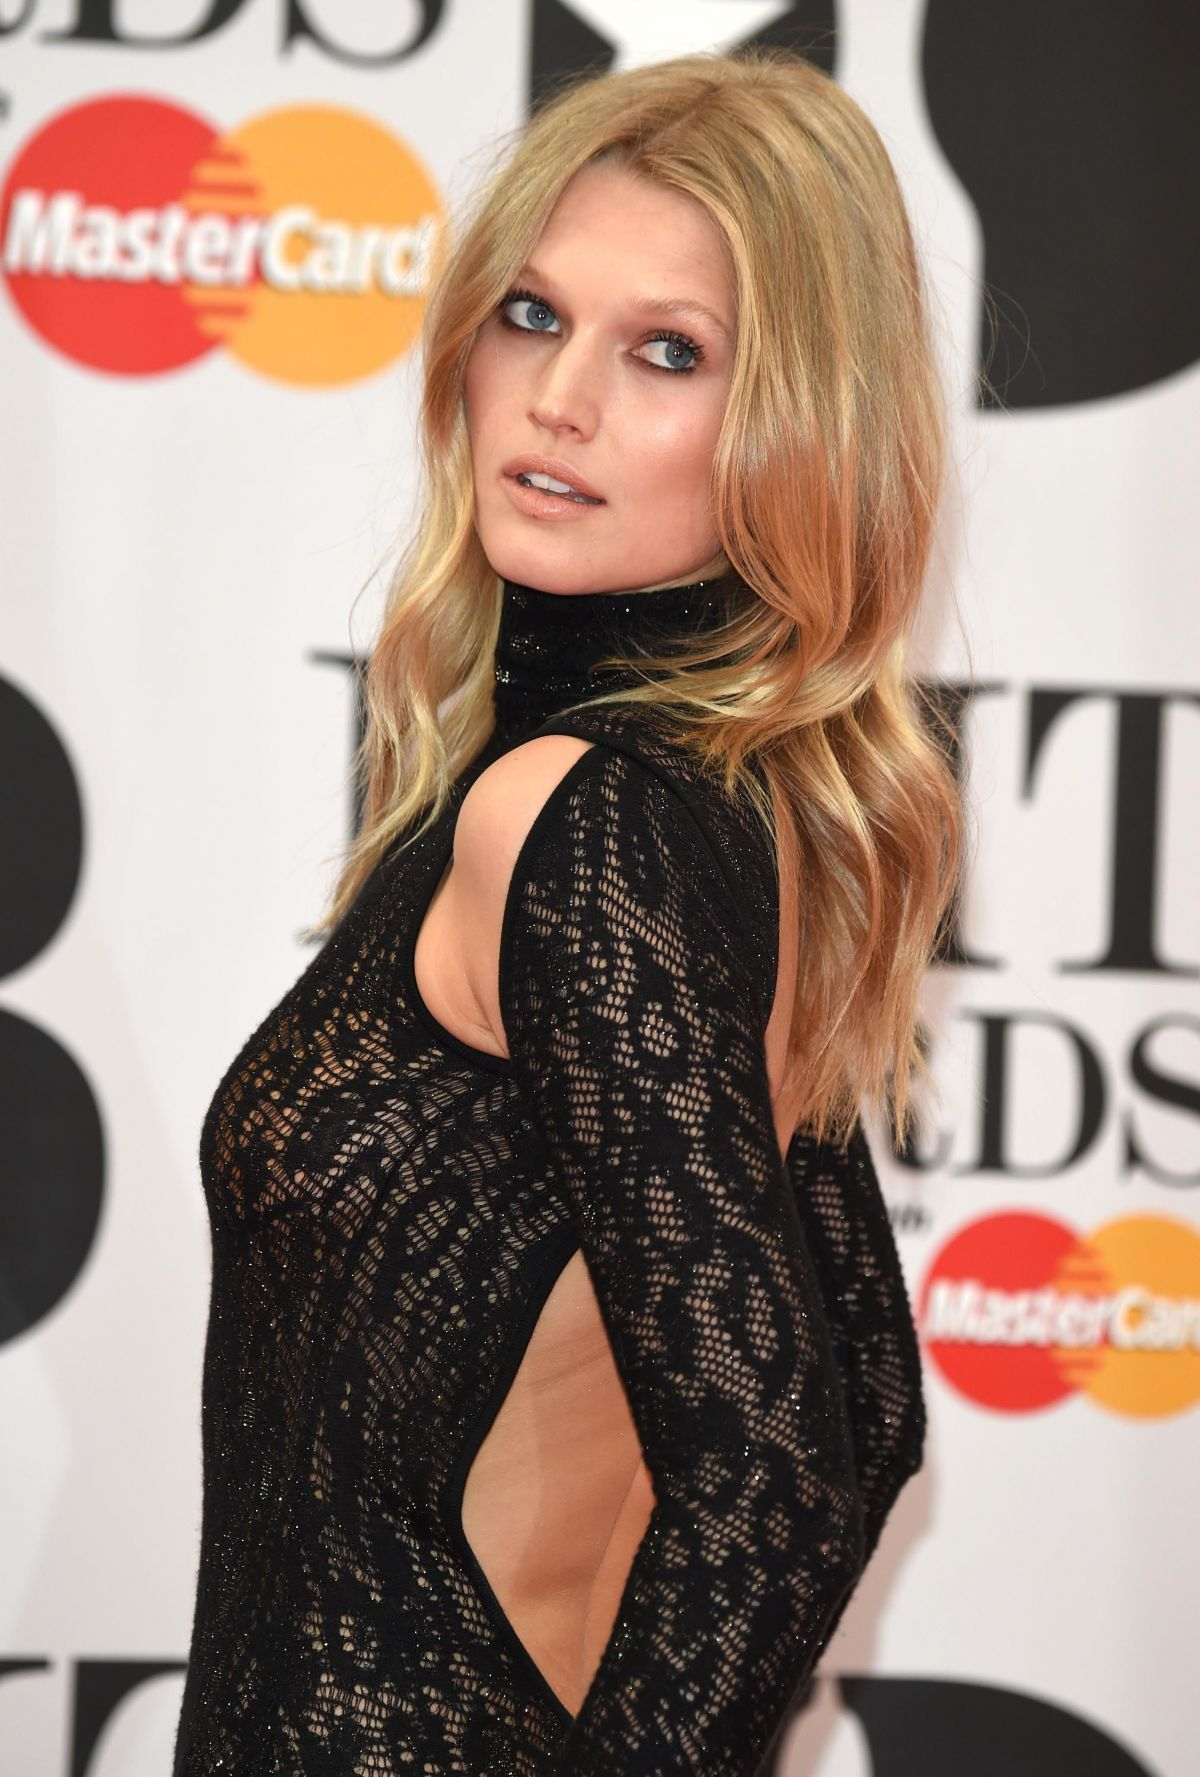 TONI GARRN at Brit Awards 2016 in London 02/24/2016